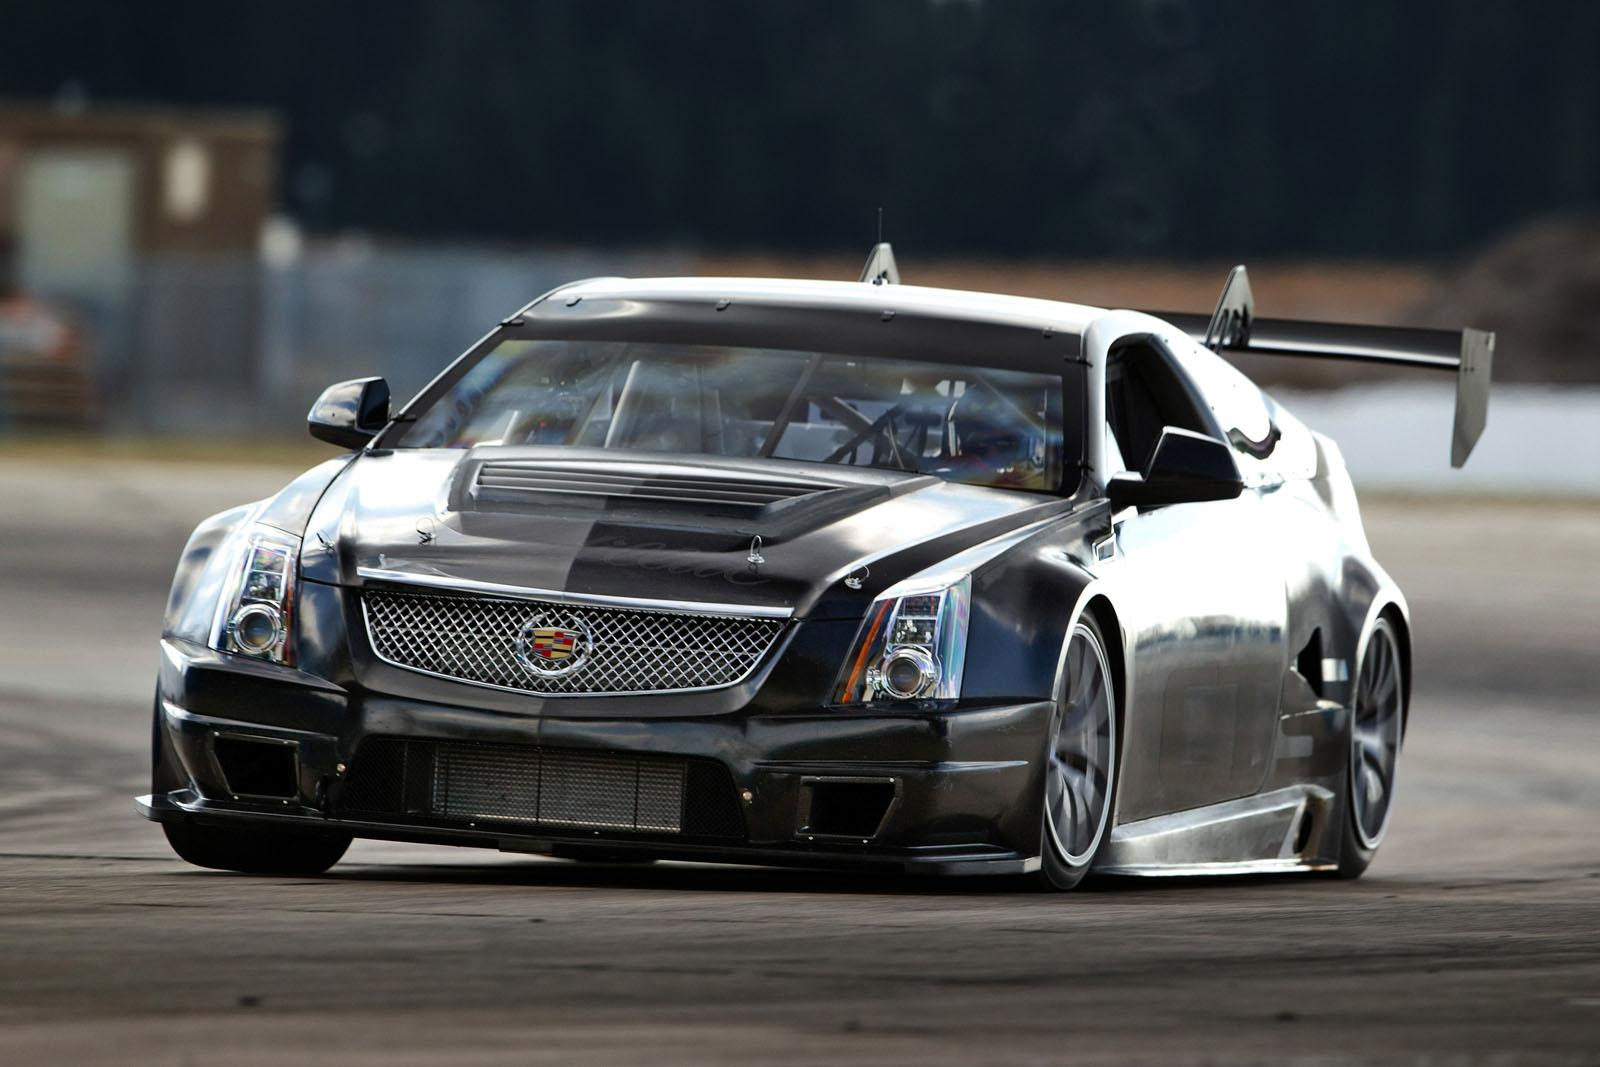 The Worlds Fastest Cadillac CTSV Just Blitzed The 14Mile In 9